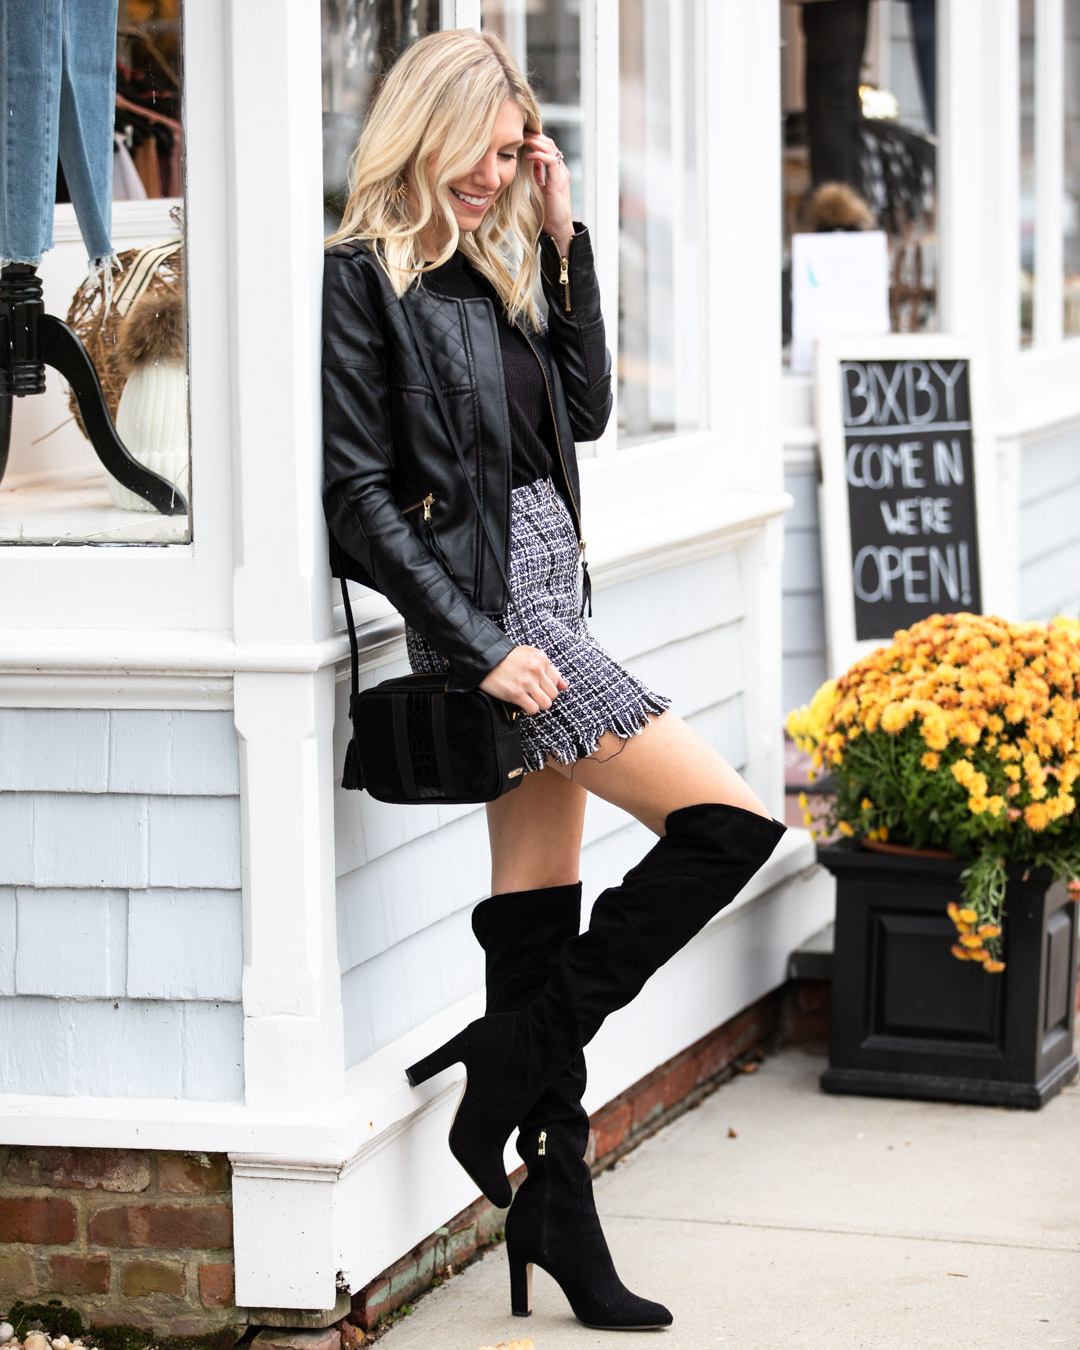 3b525f2887 Tweed Skirt & Over the Knee Boots | The Glamorous Gal